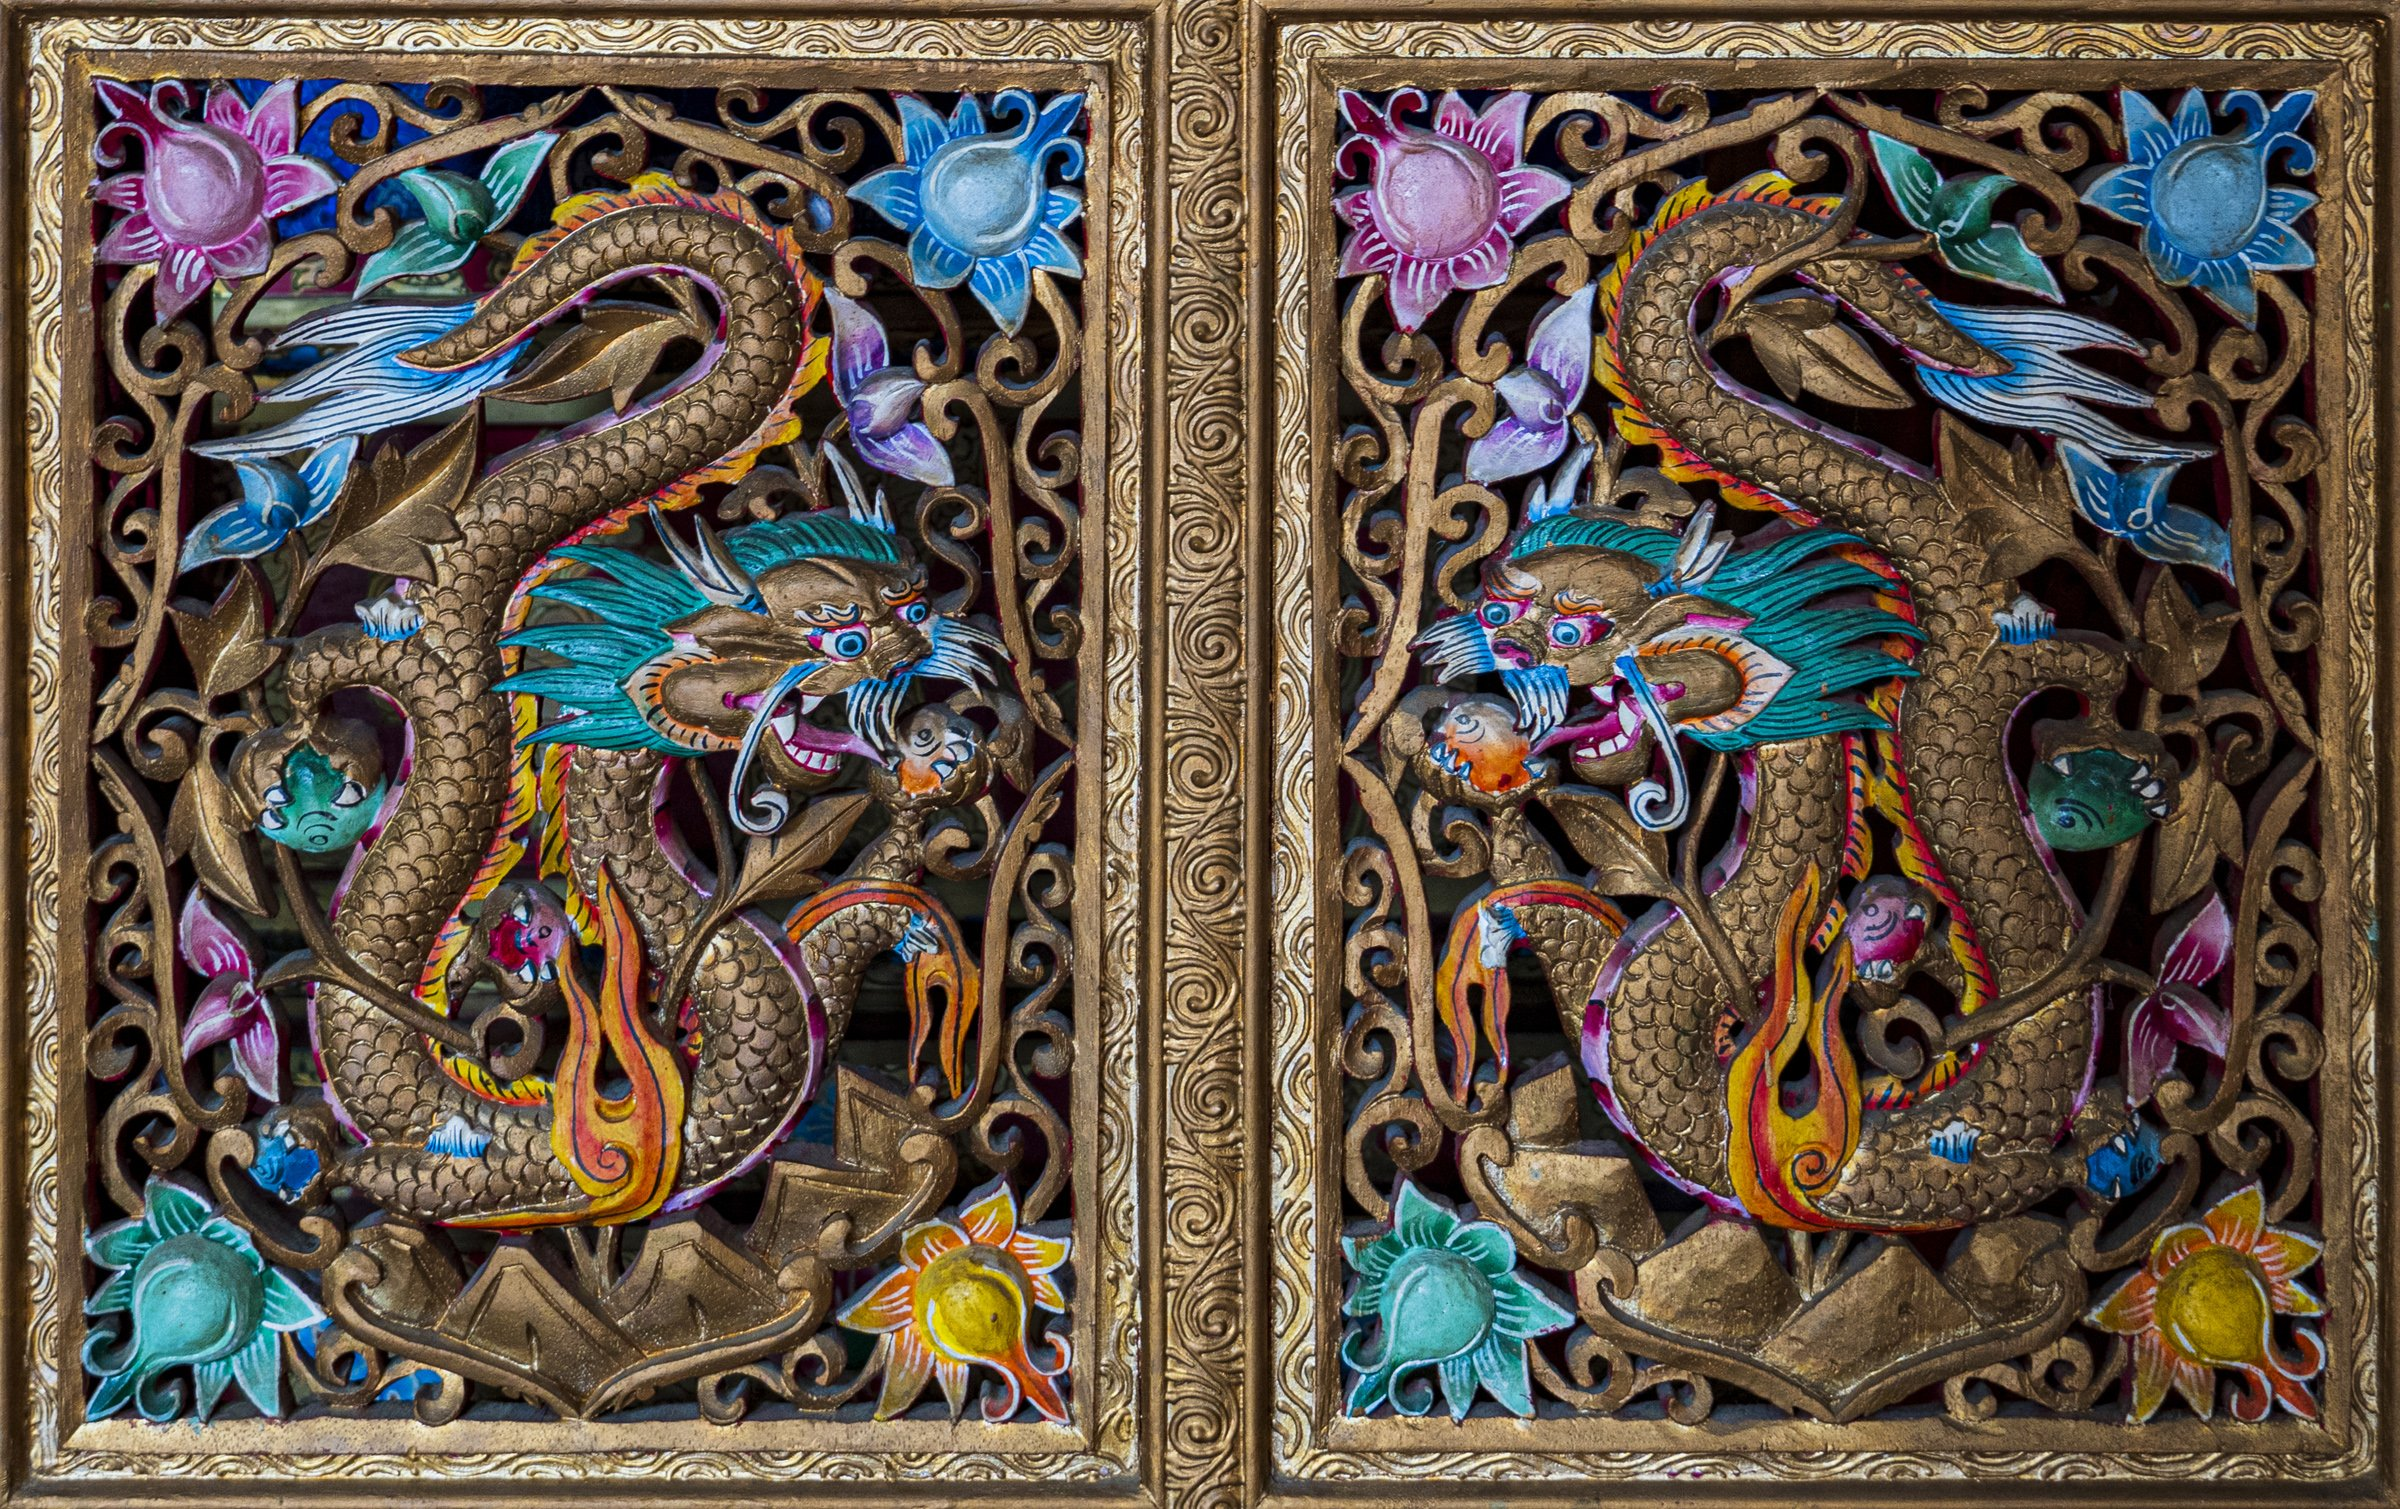 Wood sculpture of twin dragons